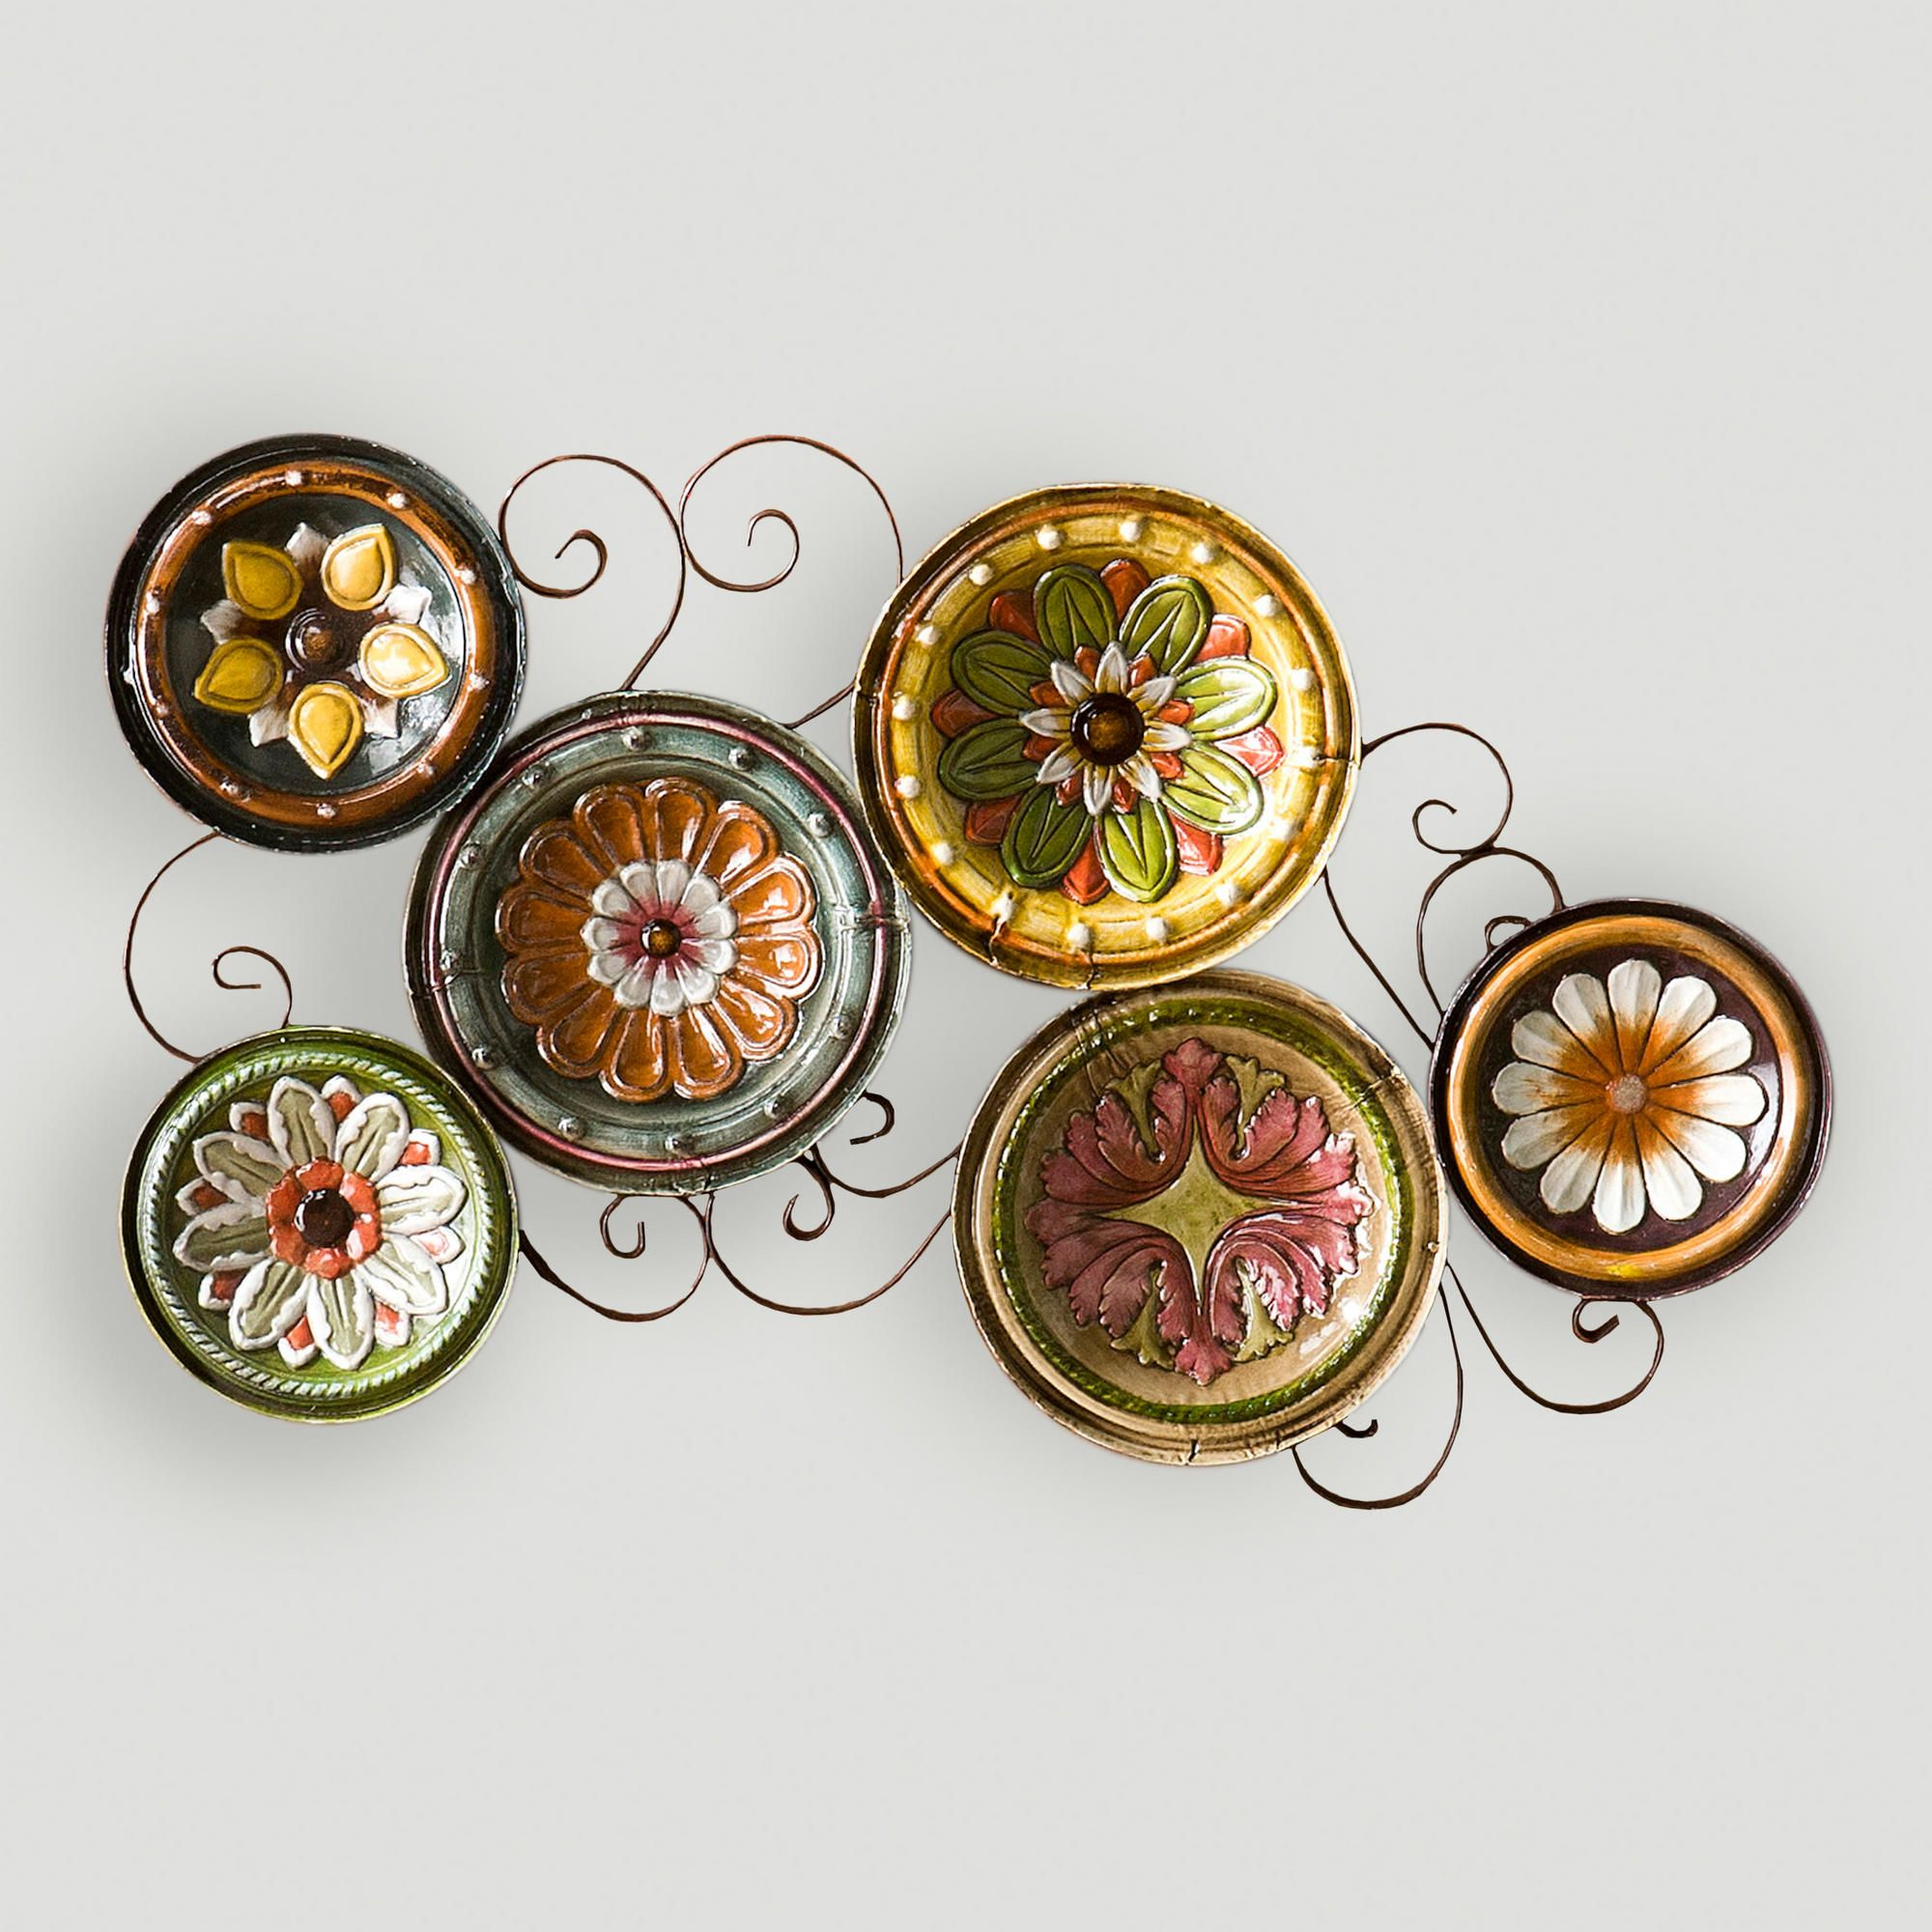 Delfina Italian Scattered Plates Wall Art | Plate wall, Walls and ...